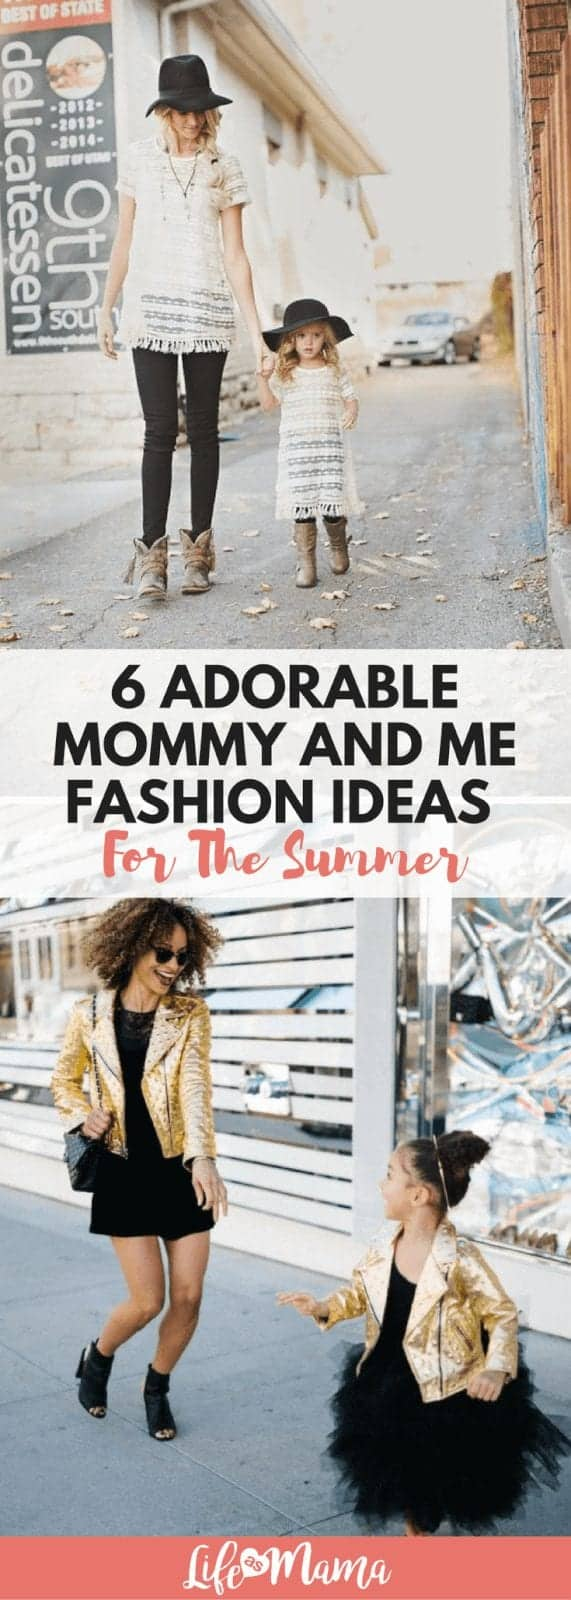 69a3acf4849 6 Adorable Mommy and Me Fashion Ideas For The Summer